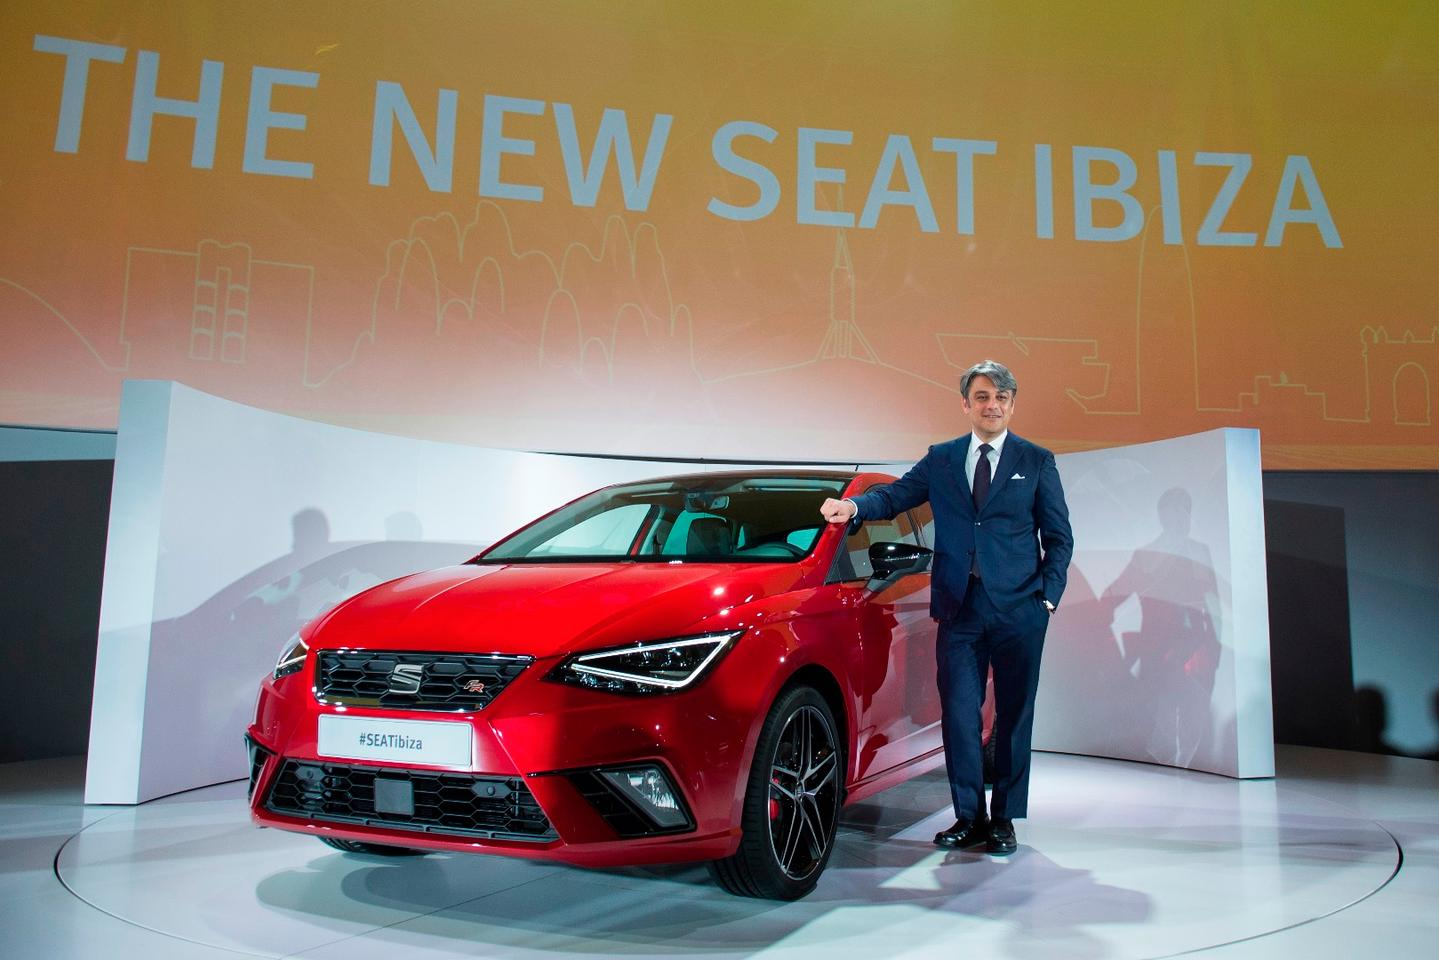 The new Ibiza at launch